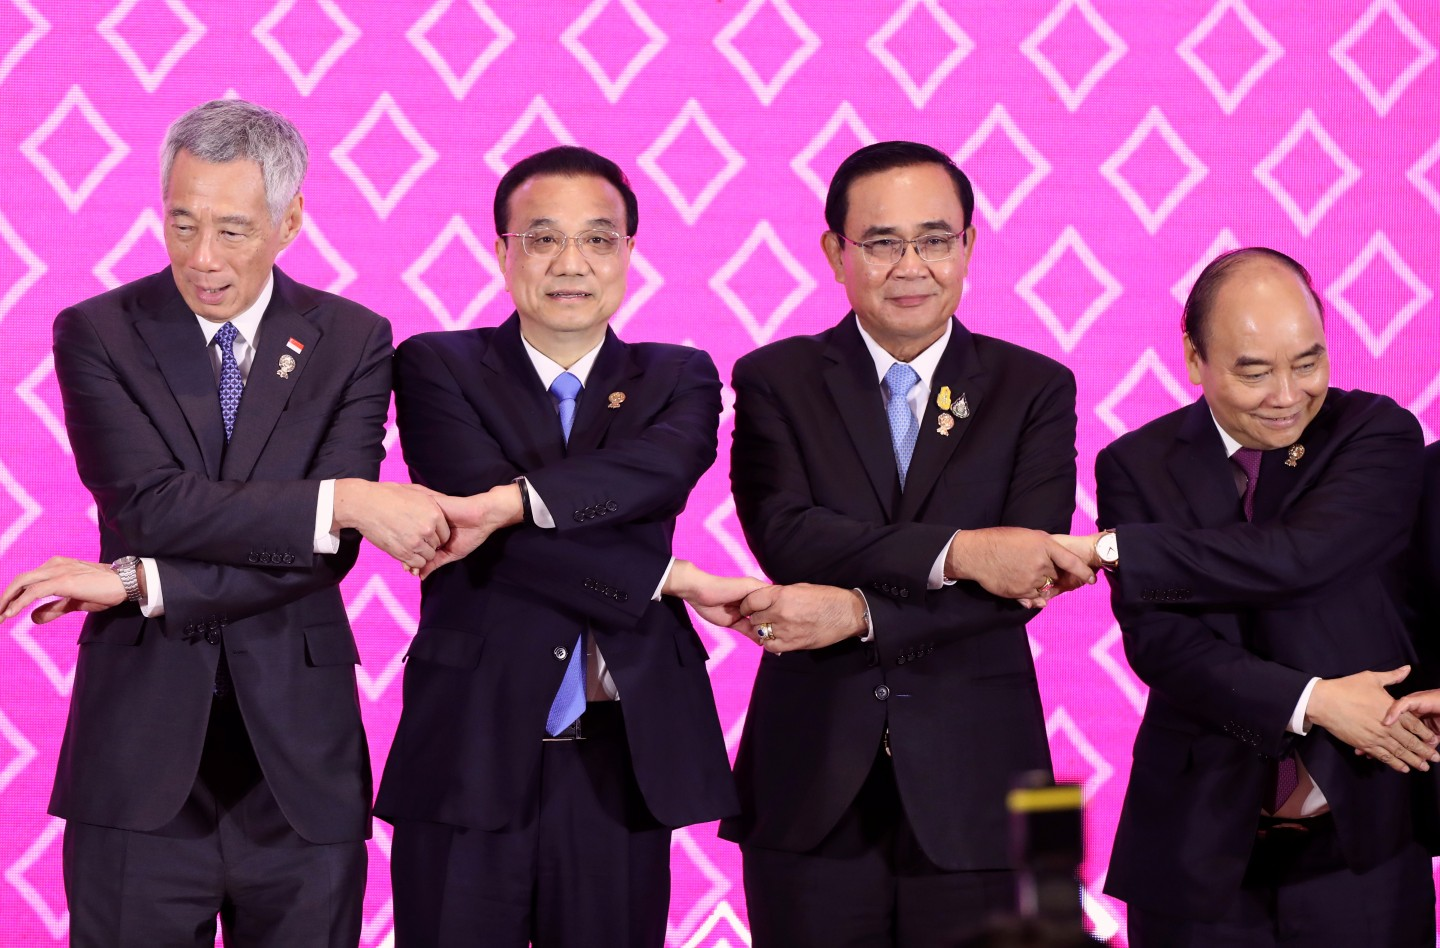 Singapore's Prime Minister Lee Hsien Loong, China's Premier Li Keqiang, Thailand's Prime Minister Prayuth Chan-ocha, and Vietnam's Prime Minister Nguyen Xuan Phuc, pose for a photo at the ASEAN-China Summit on the sidelines of the 35th ASEAN Summit in Bangkok, Thailand, on 3 November 2019. (Soe Zeya Tun/Reuters)